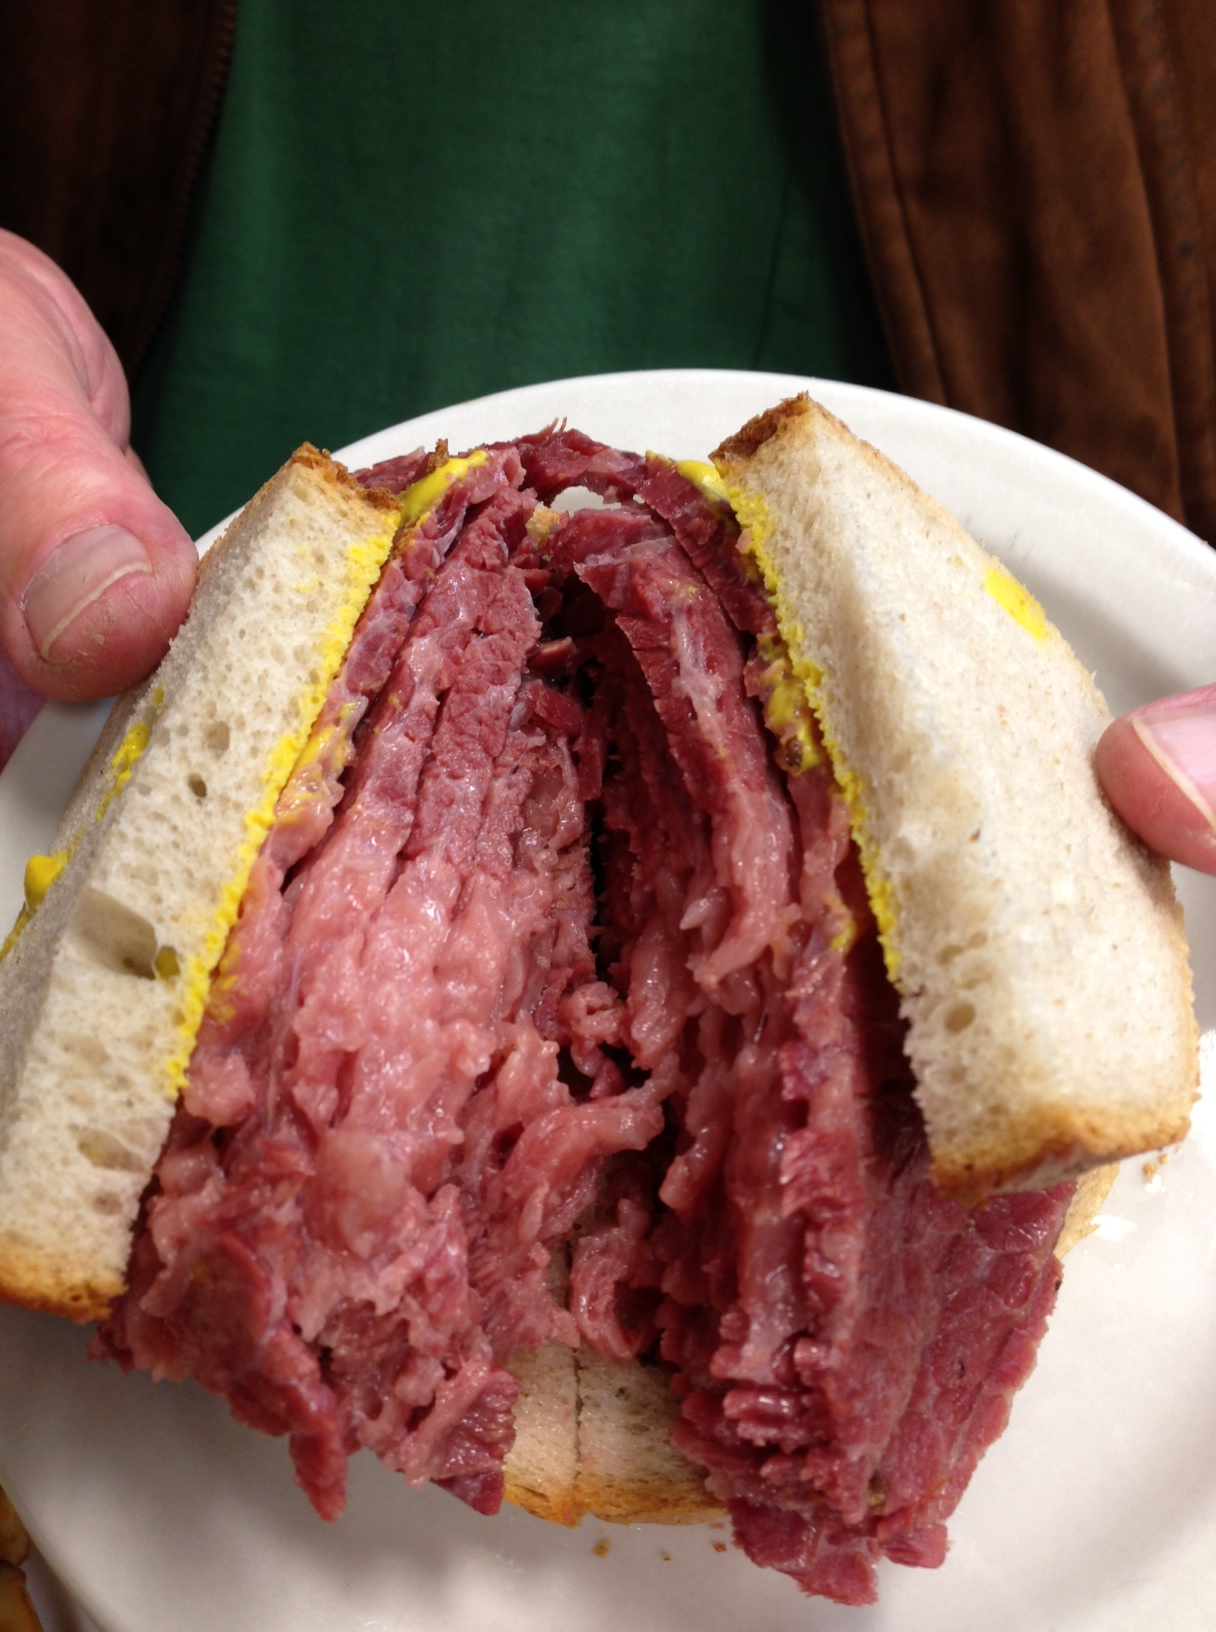 Smoked meat at Schwartz's, fatty and fabulous.